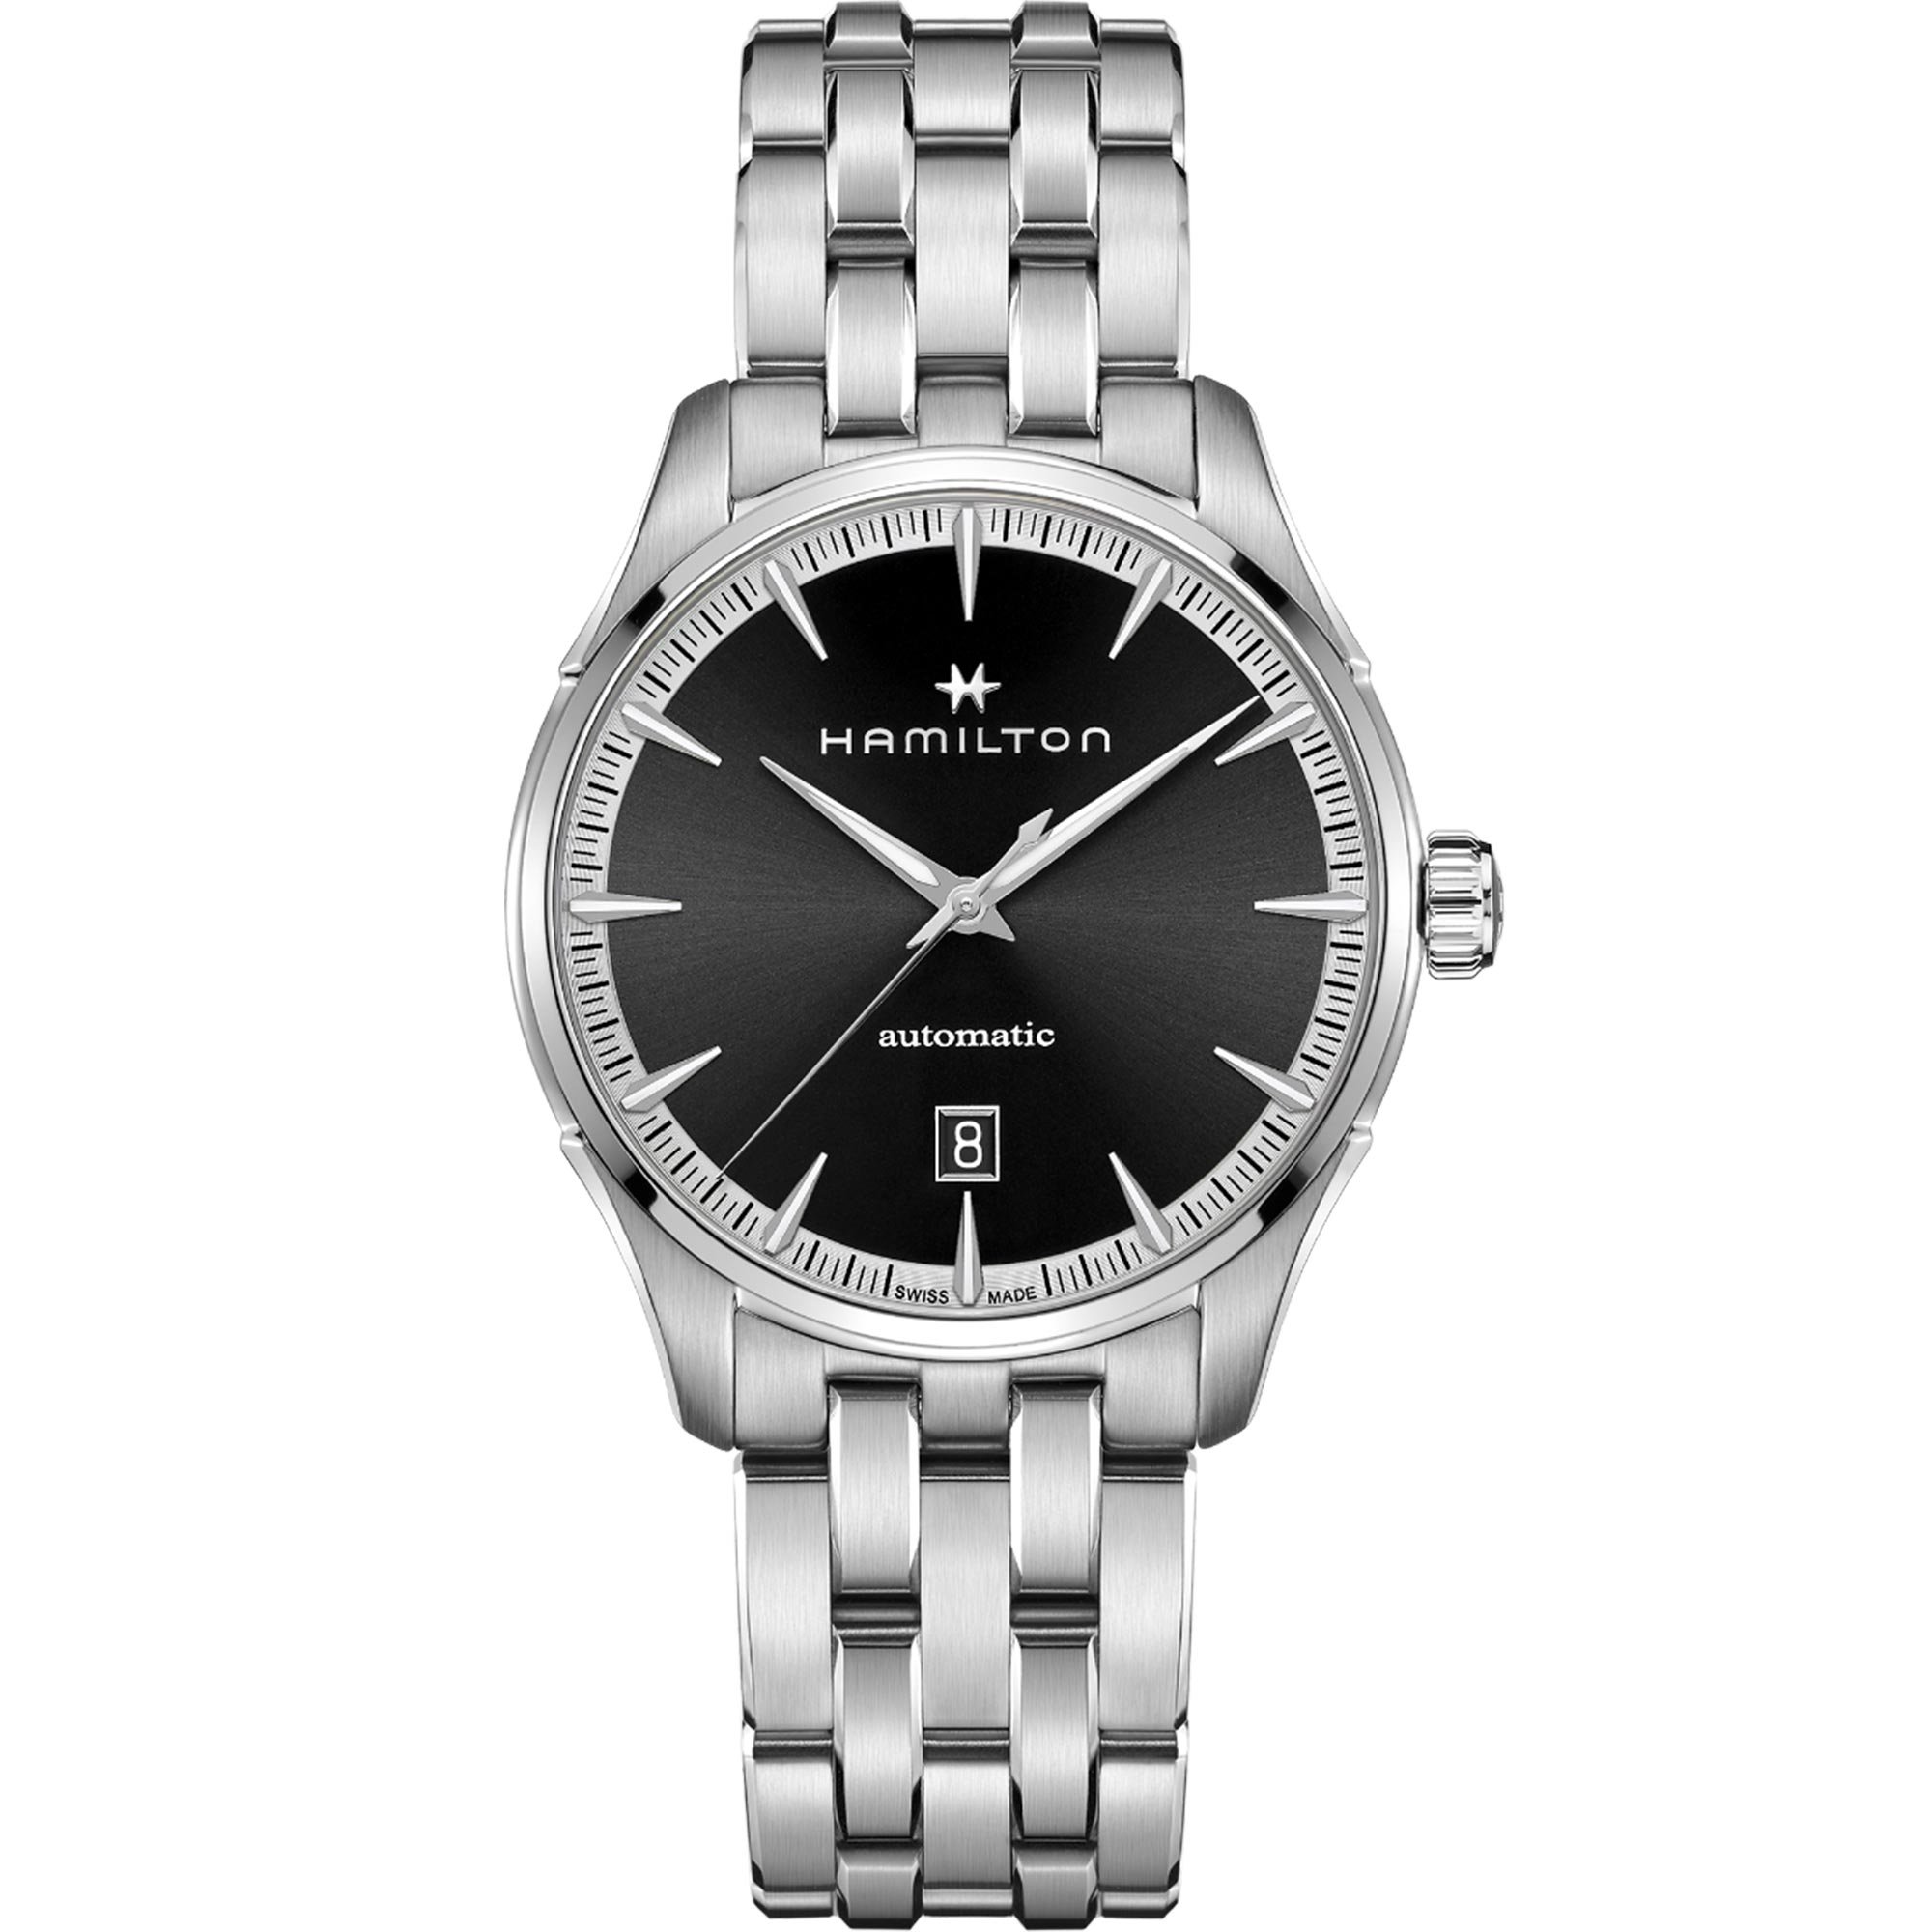 Hamilton Jazzmaster Automatic Black Dial Silver Stainless Steel Men's Watch H32475130